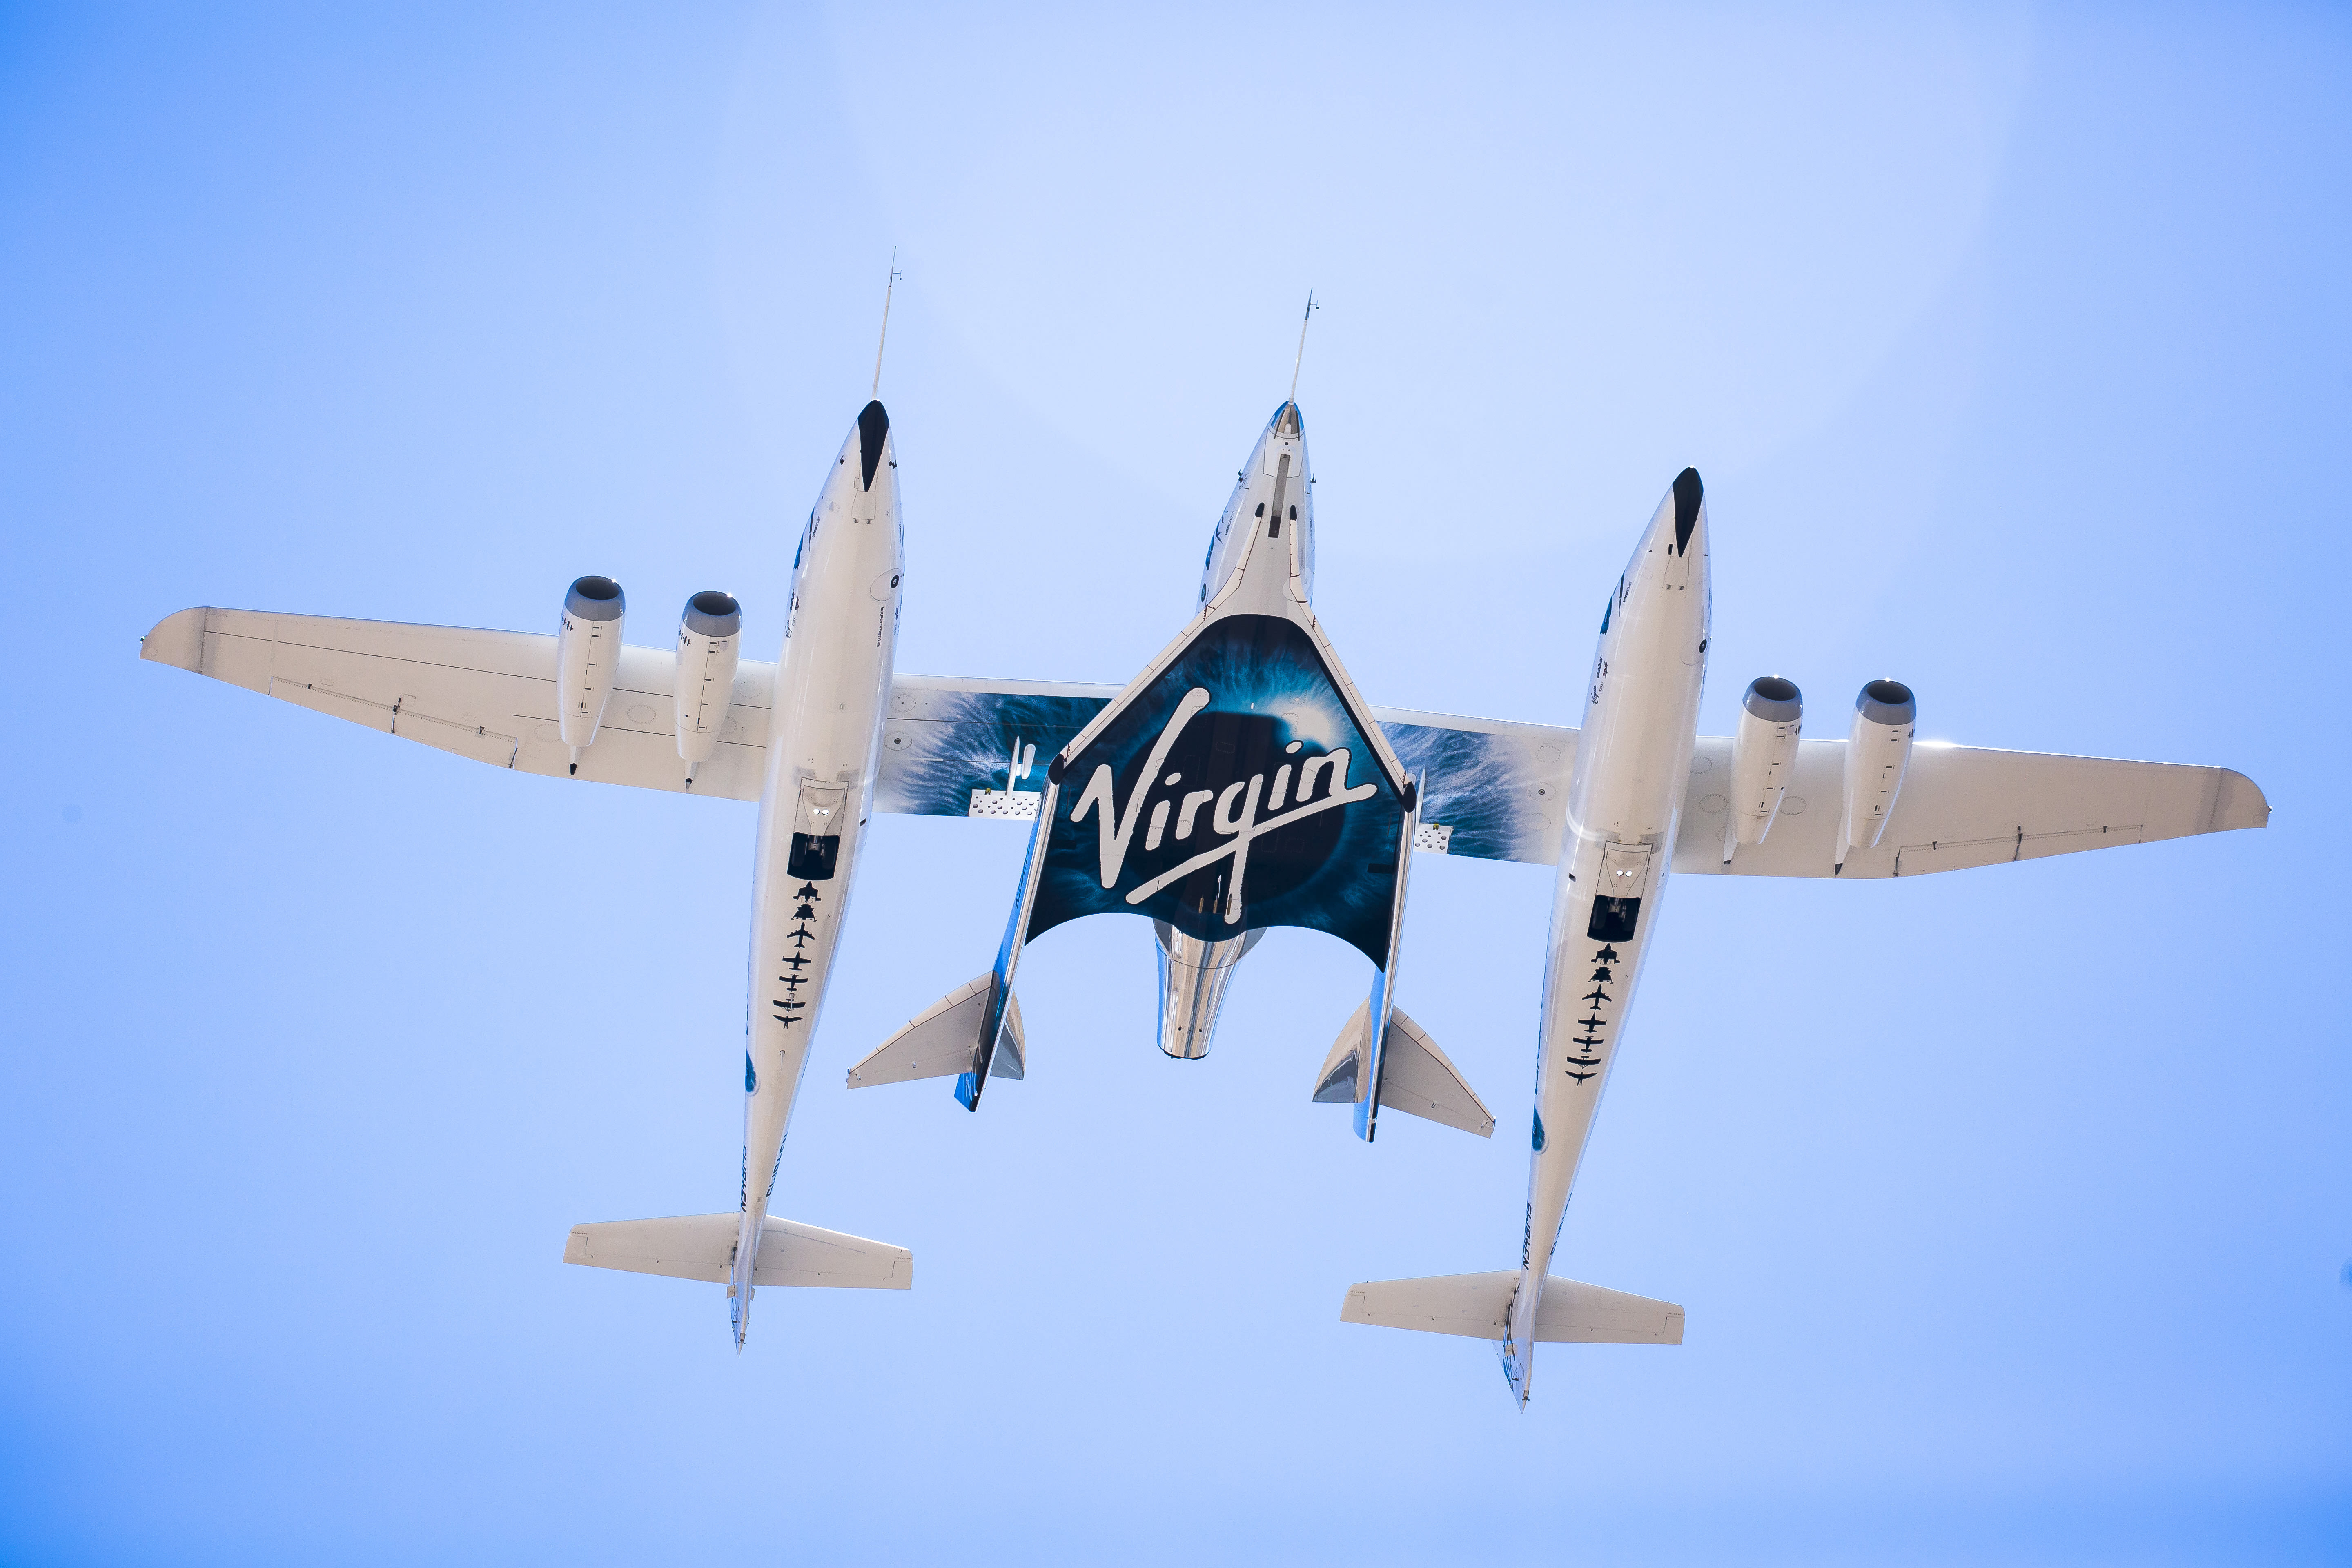 Virgin Galactic's VSS Unity and VMS Eve